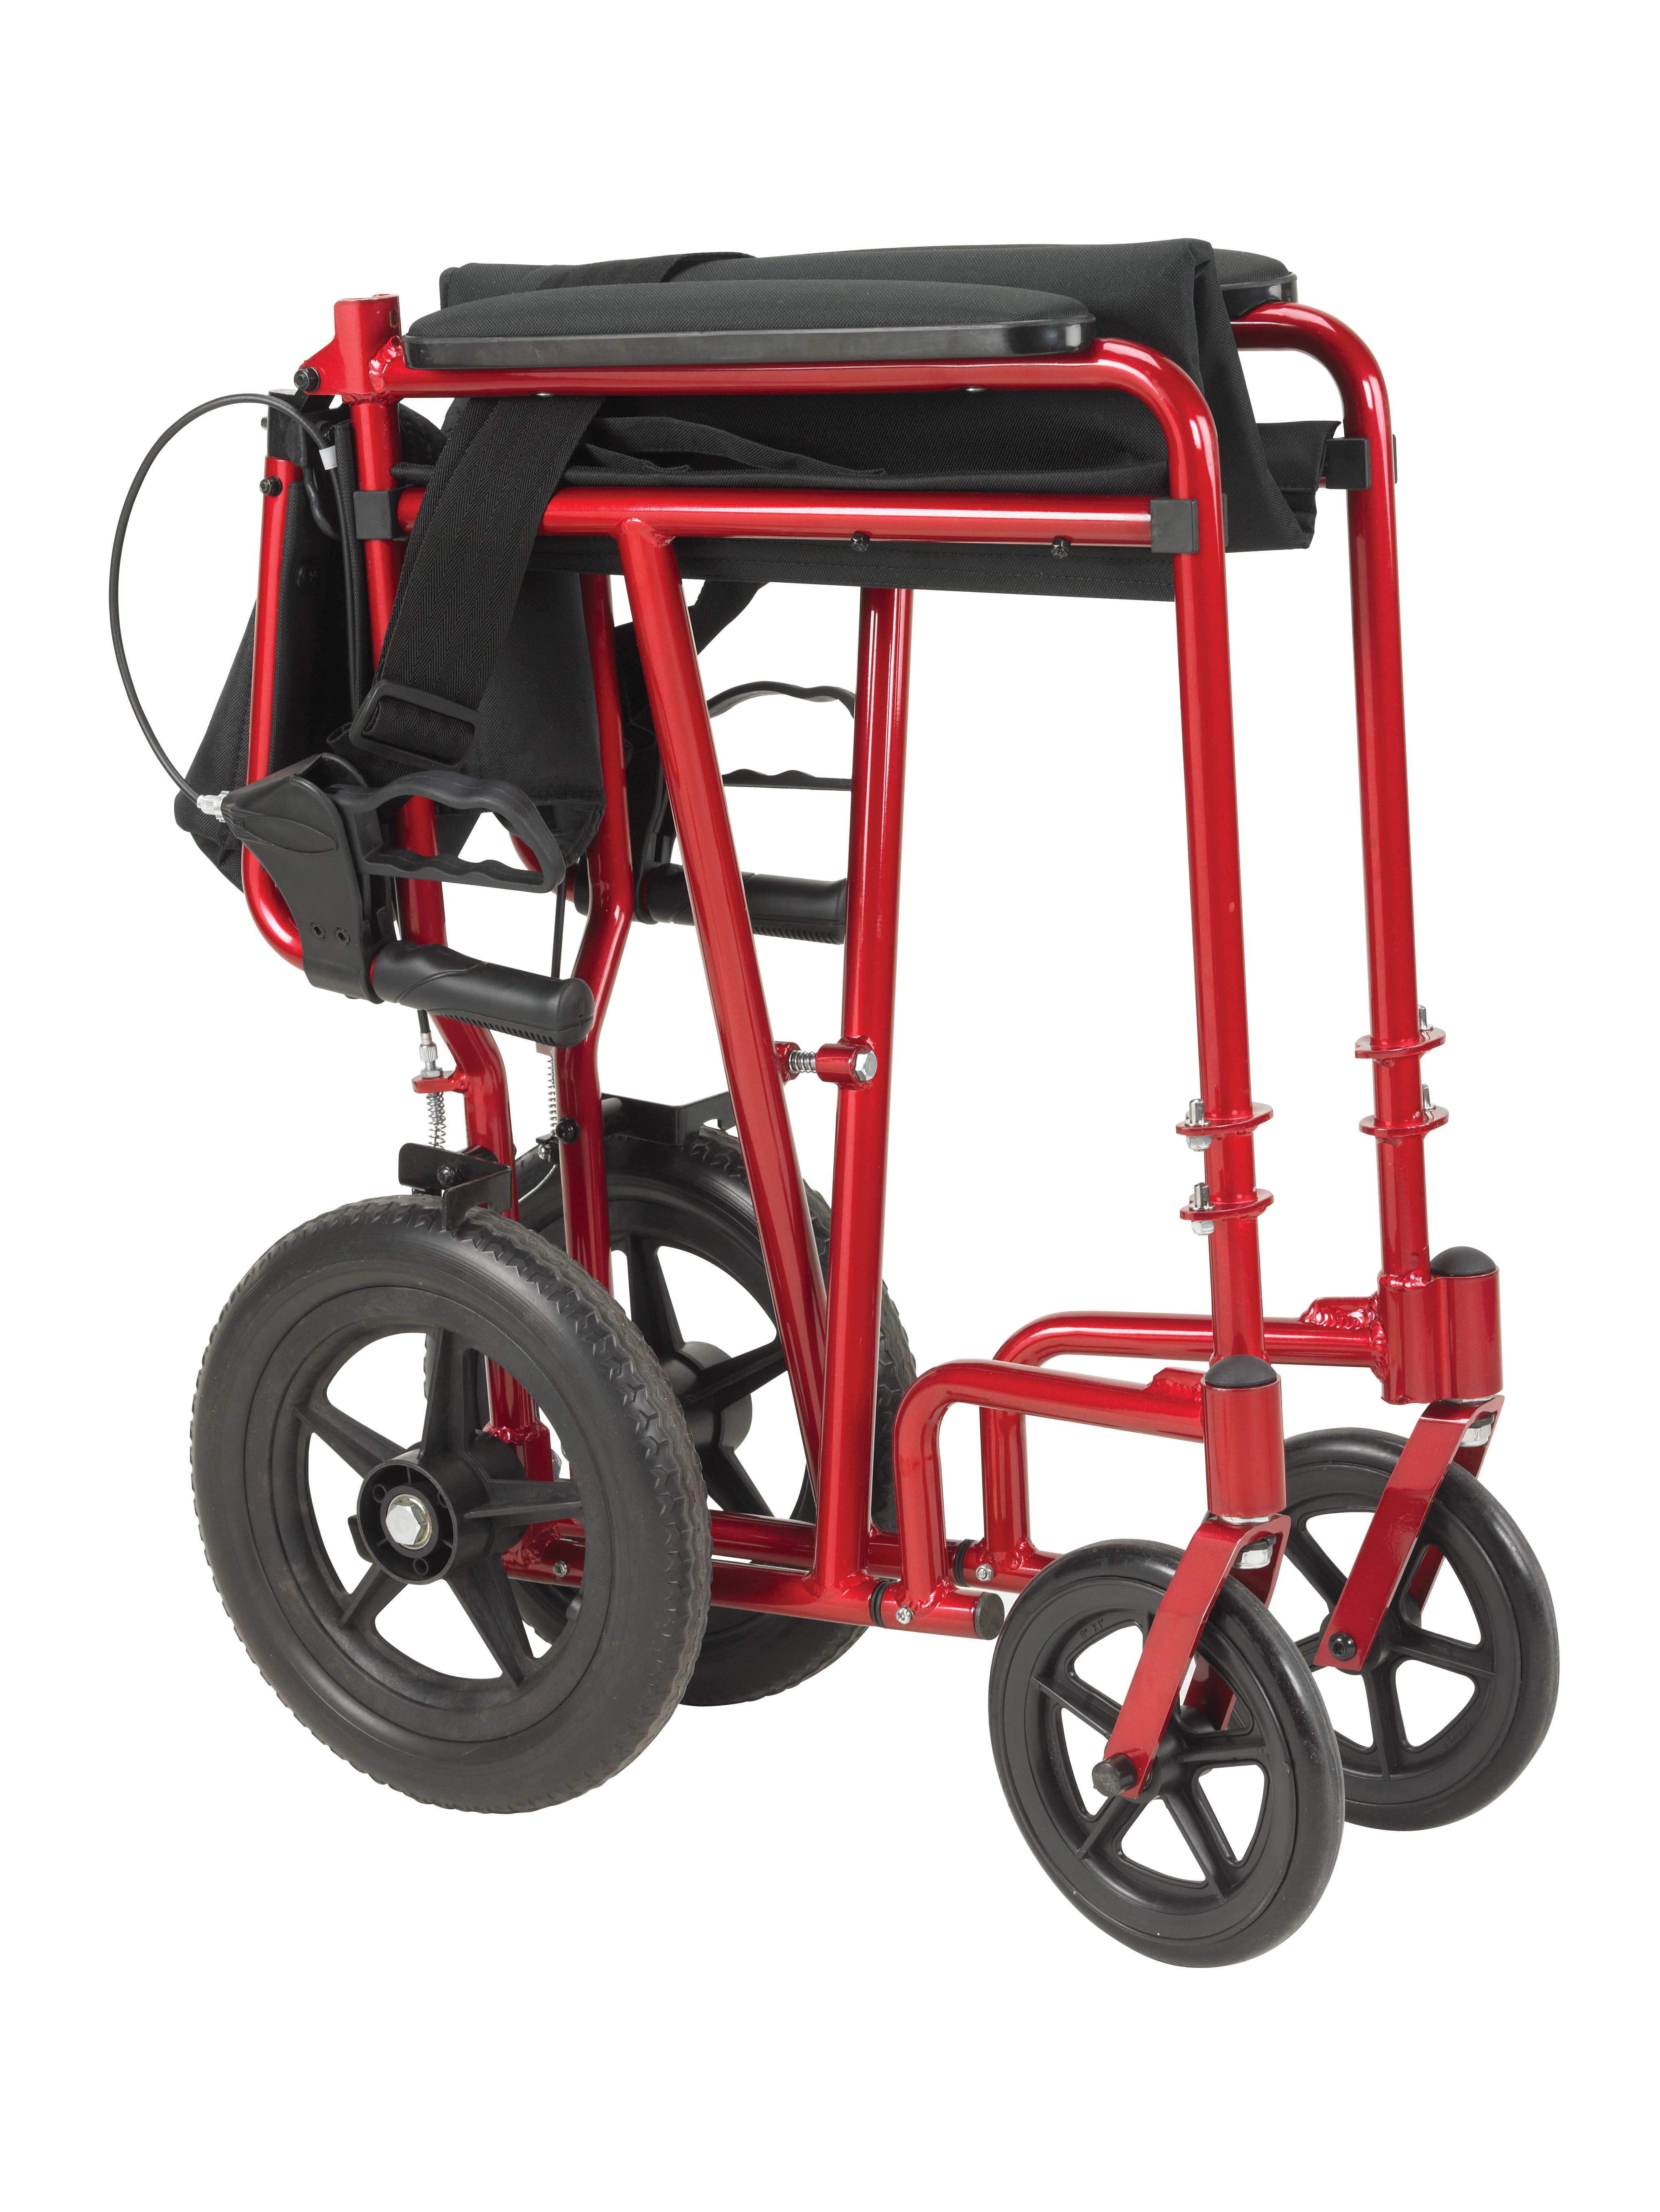 lightweight-expedition-transport-wheelchair-with-hand-brakes-exp19ltrd-drive-medical-3.jpg